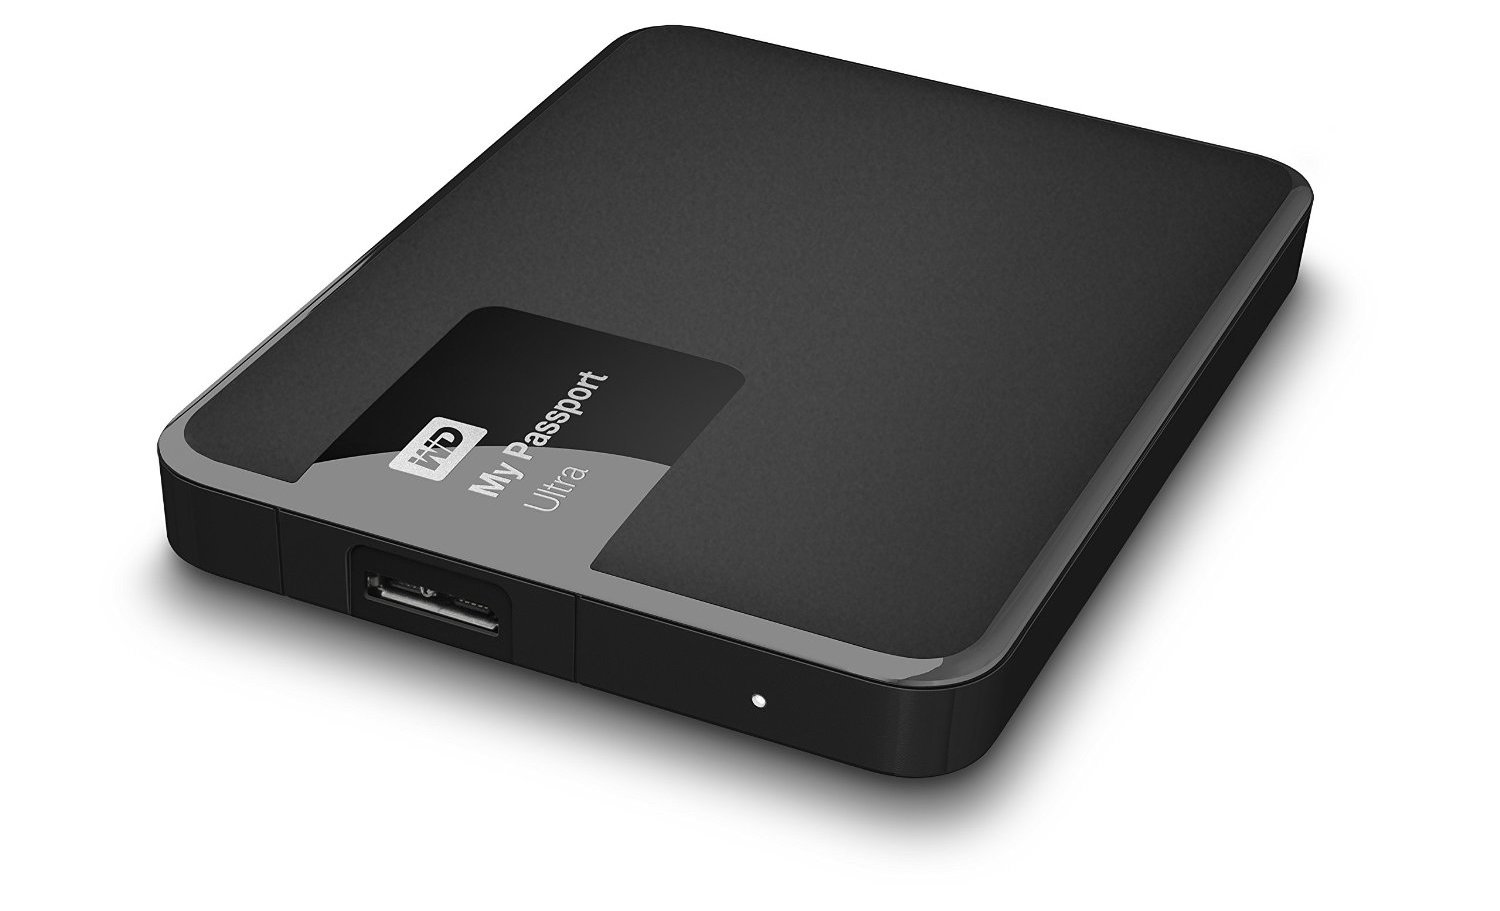 Best External Hard Drive Deals